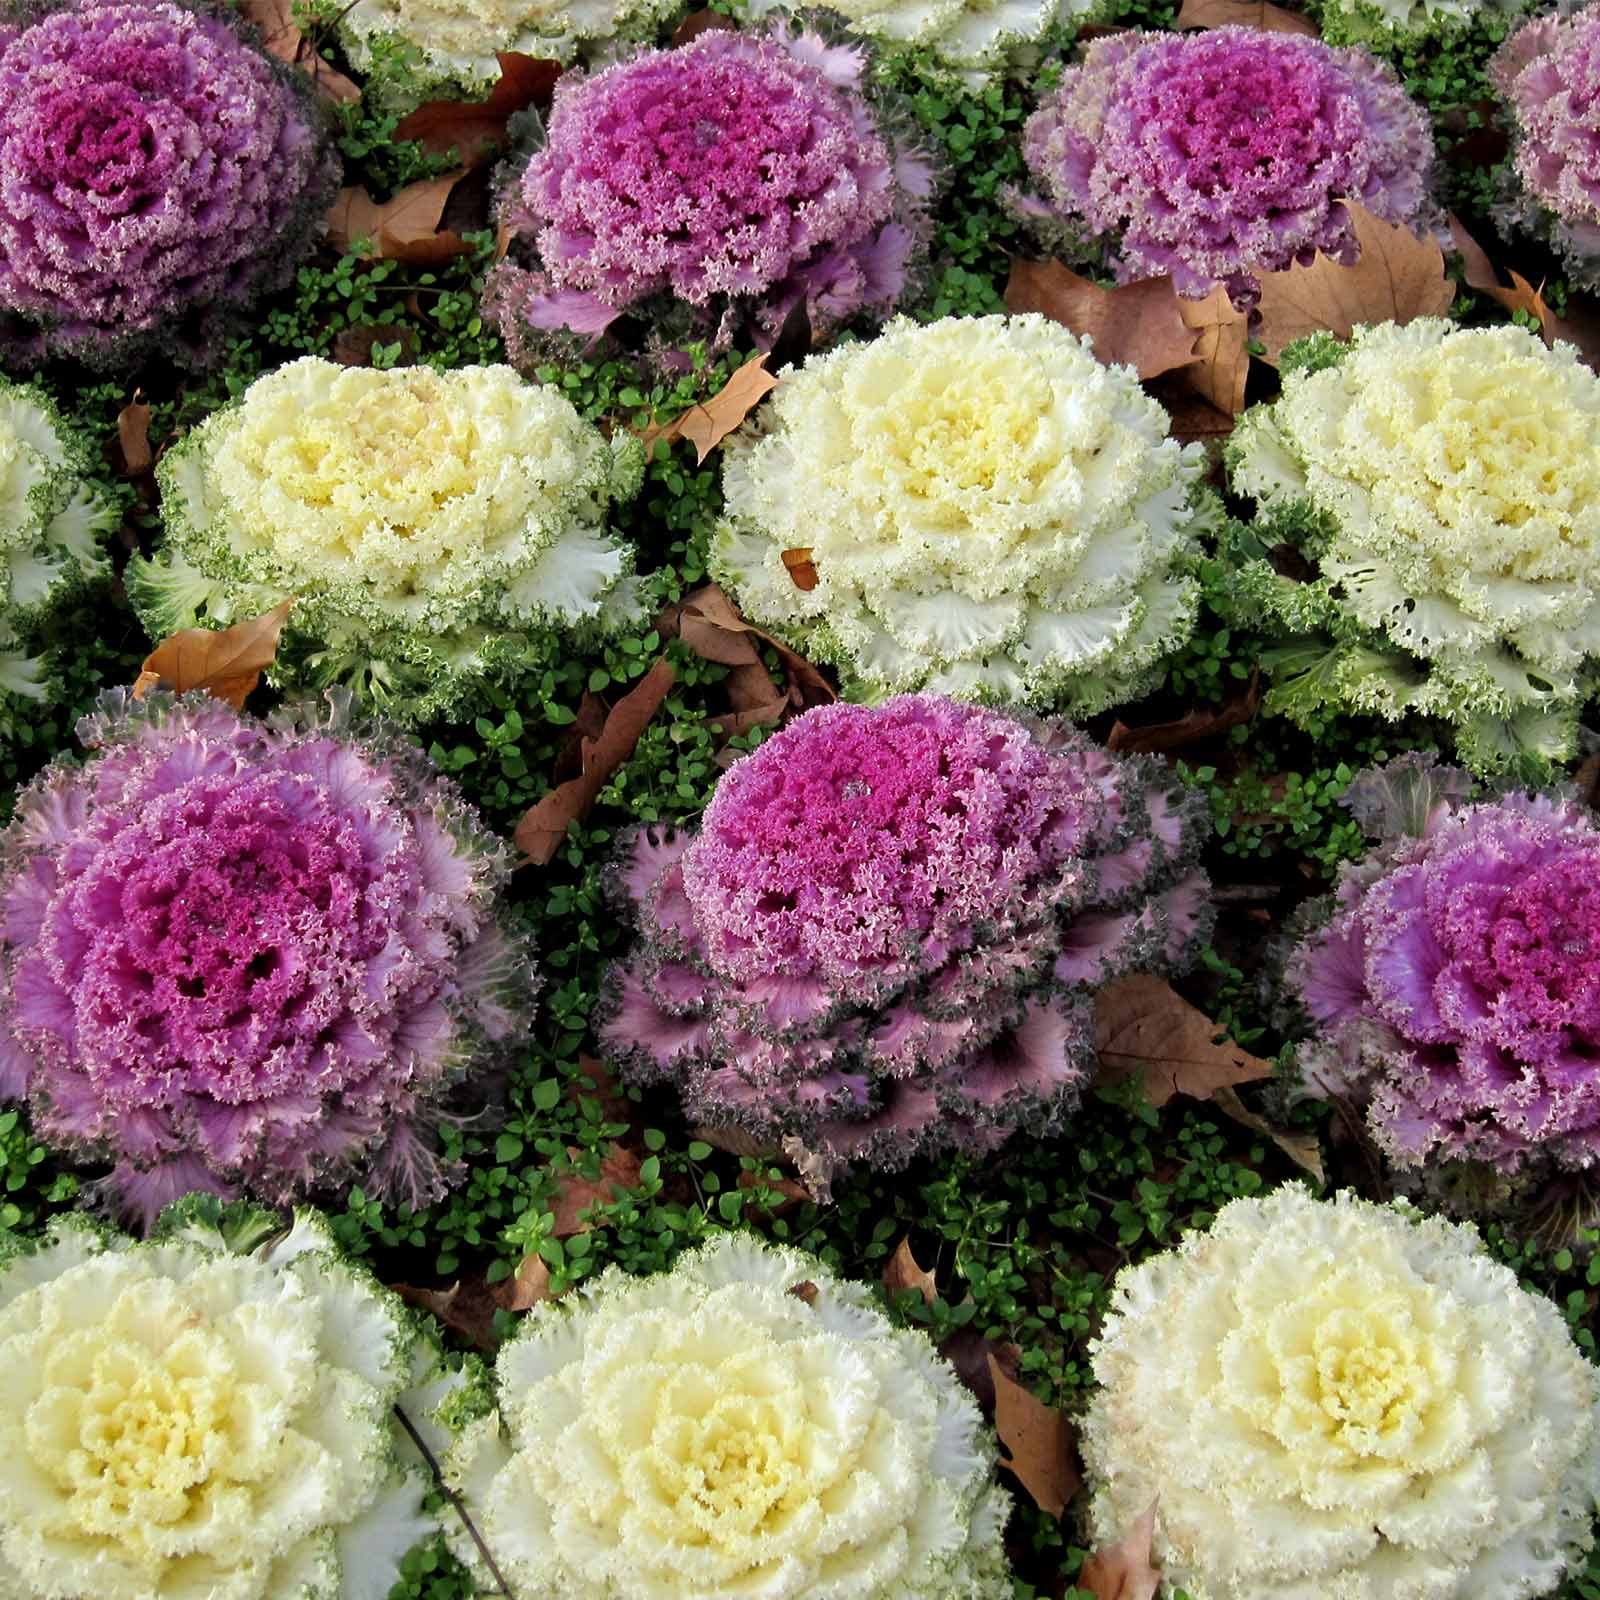 Dynasty Series Osaka Flowering Cabbage Garden Seed Mix 1000